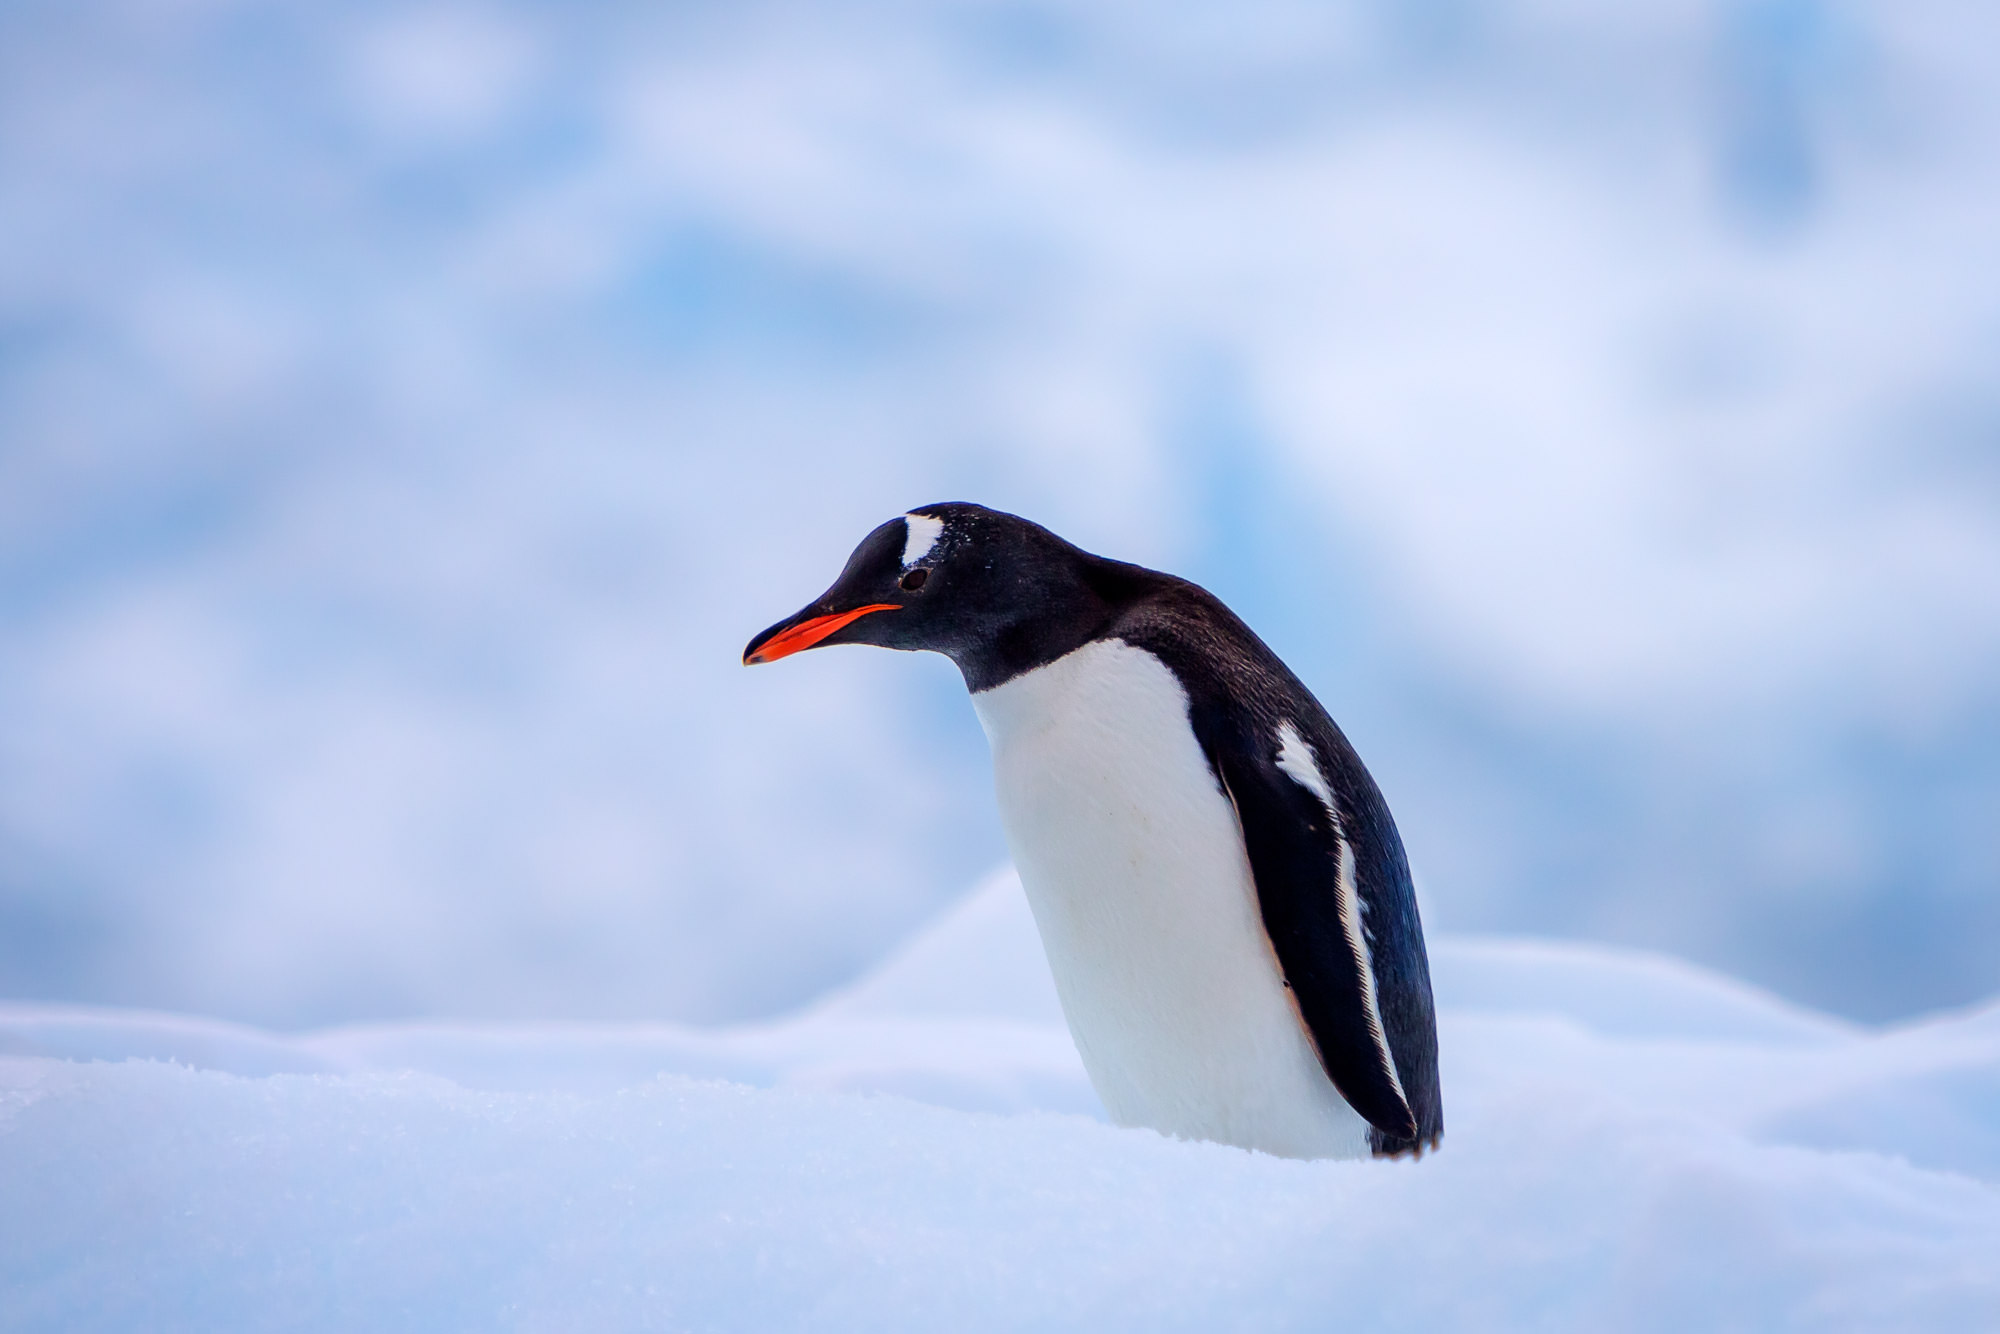 Penguin, Antarctica, Gentoo, limited edition, photograph, fine art, wildlife, photo